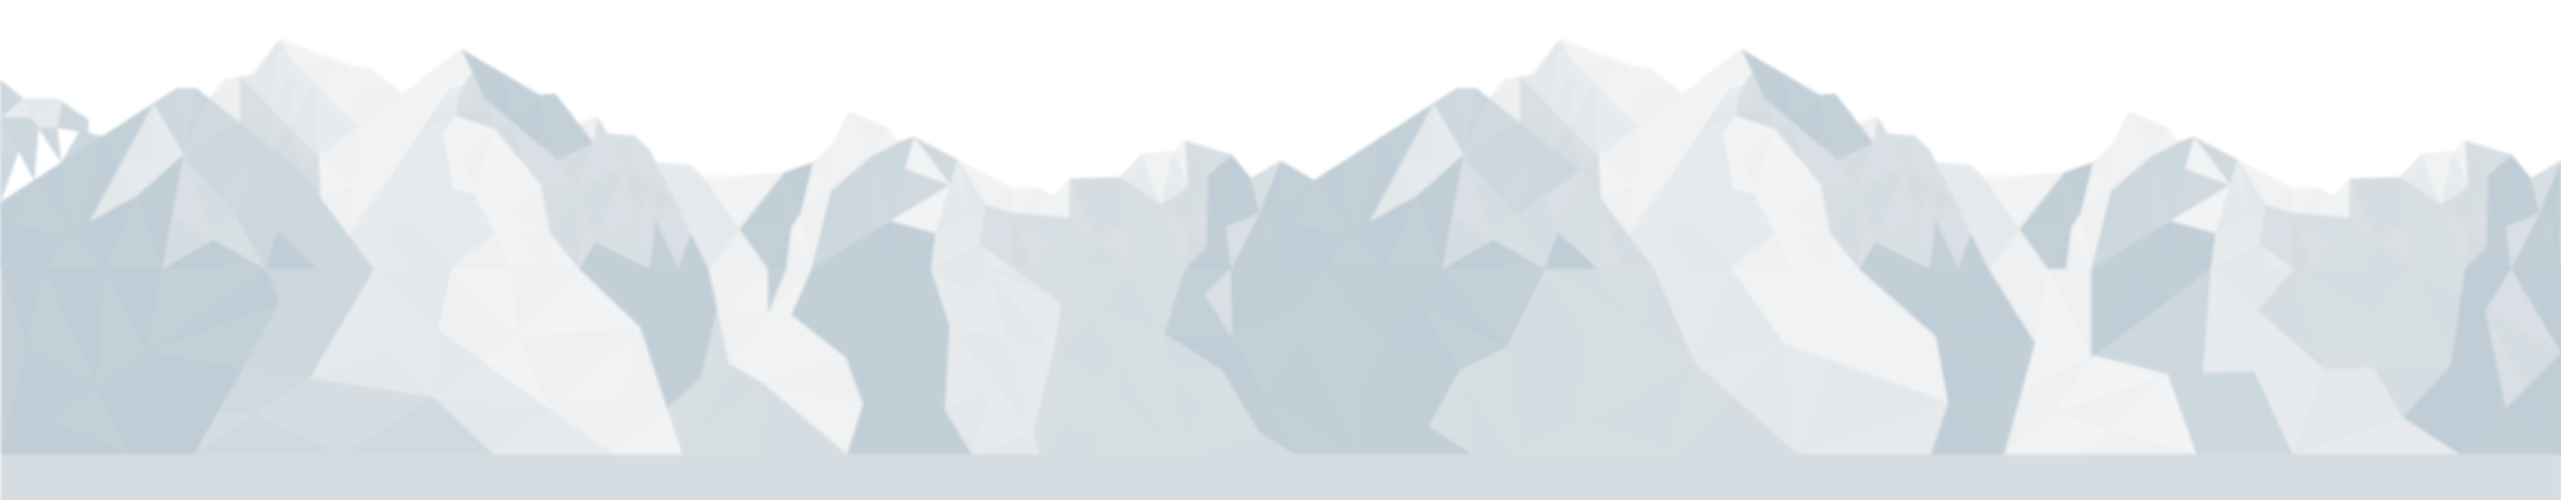 Background layer of geometrical vector mountains, illustration